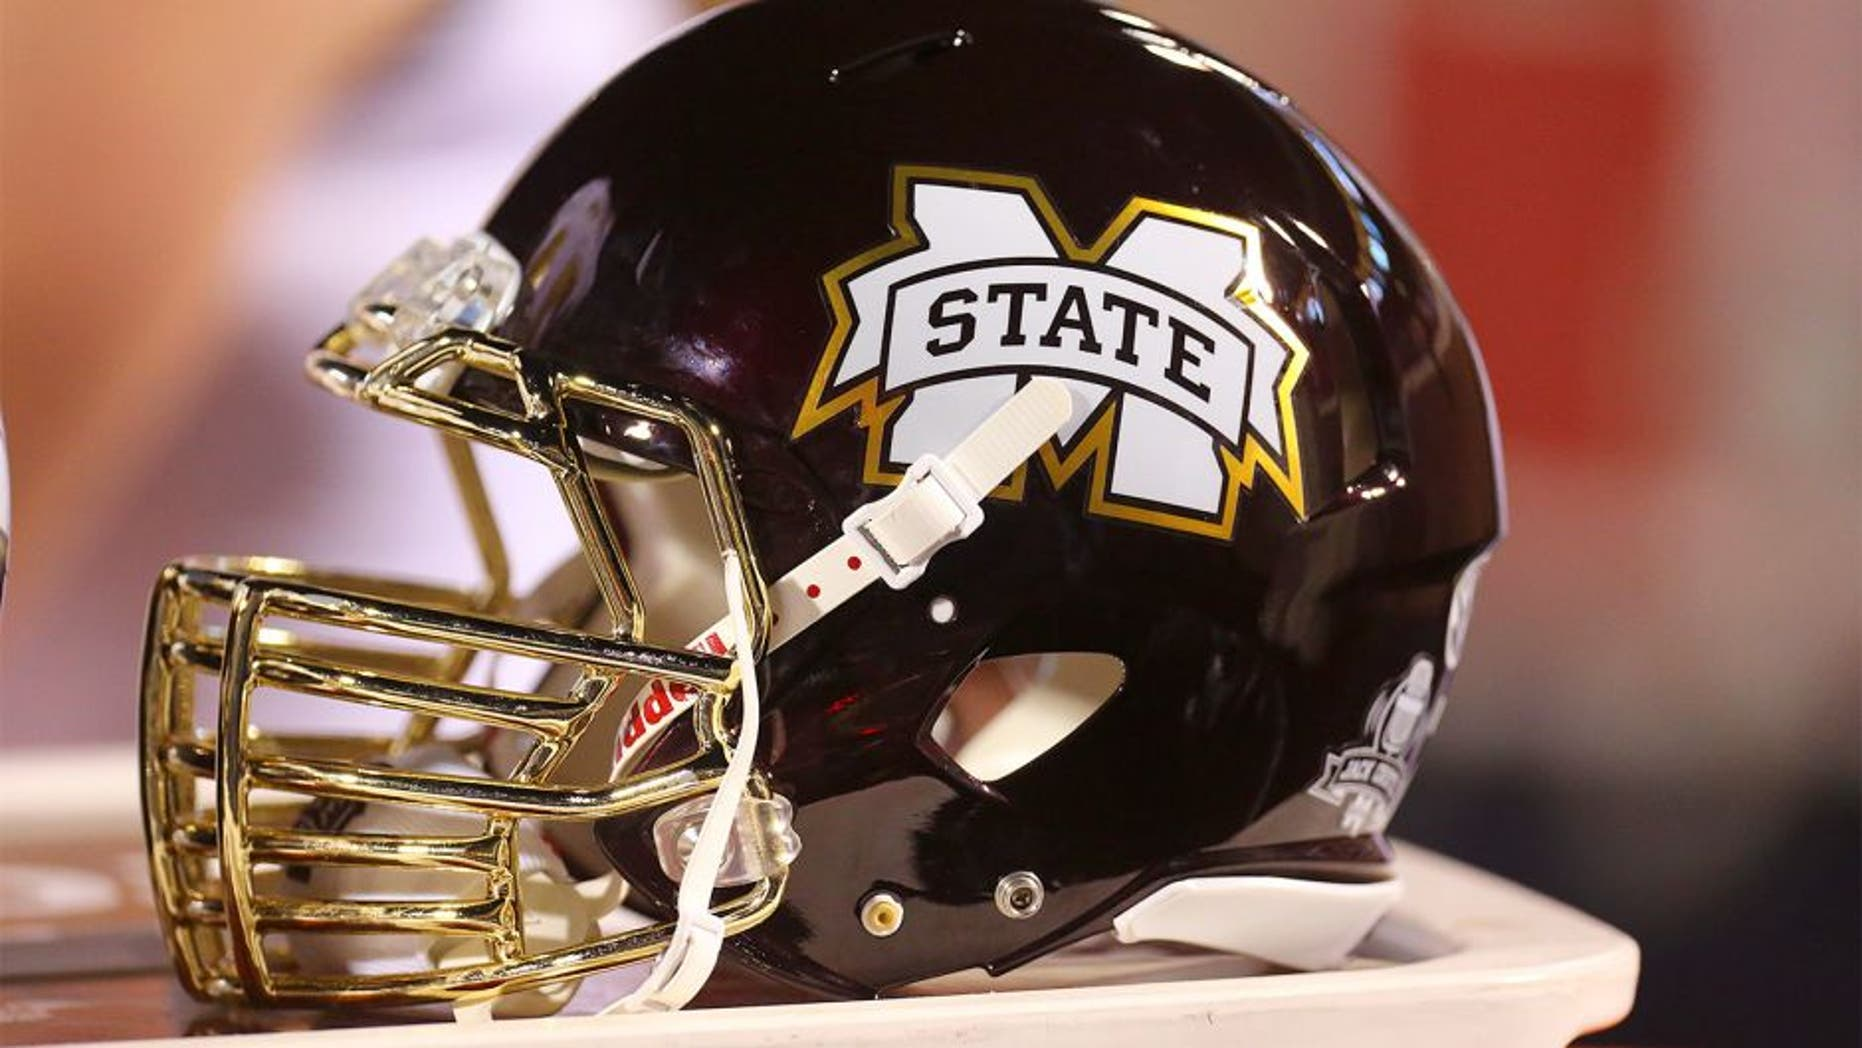 Nov 29, 2014; Oxford, MS, USA; A Mississippi State Bulldogs helmet rest on the sidelines against the Mississippi Rebels at Vaught-Hemingway Stadium. The Rebels won 31-17. Mandatory Credit: Spruce Derden-USA TODAY Sports